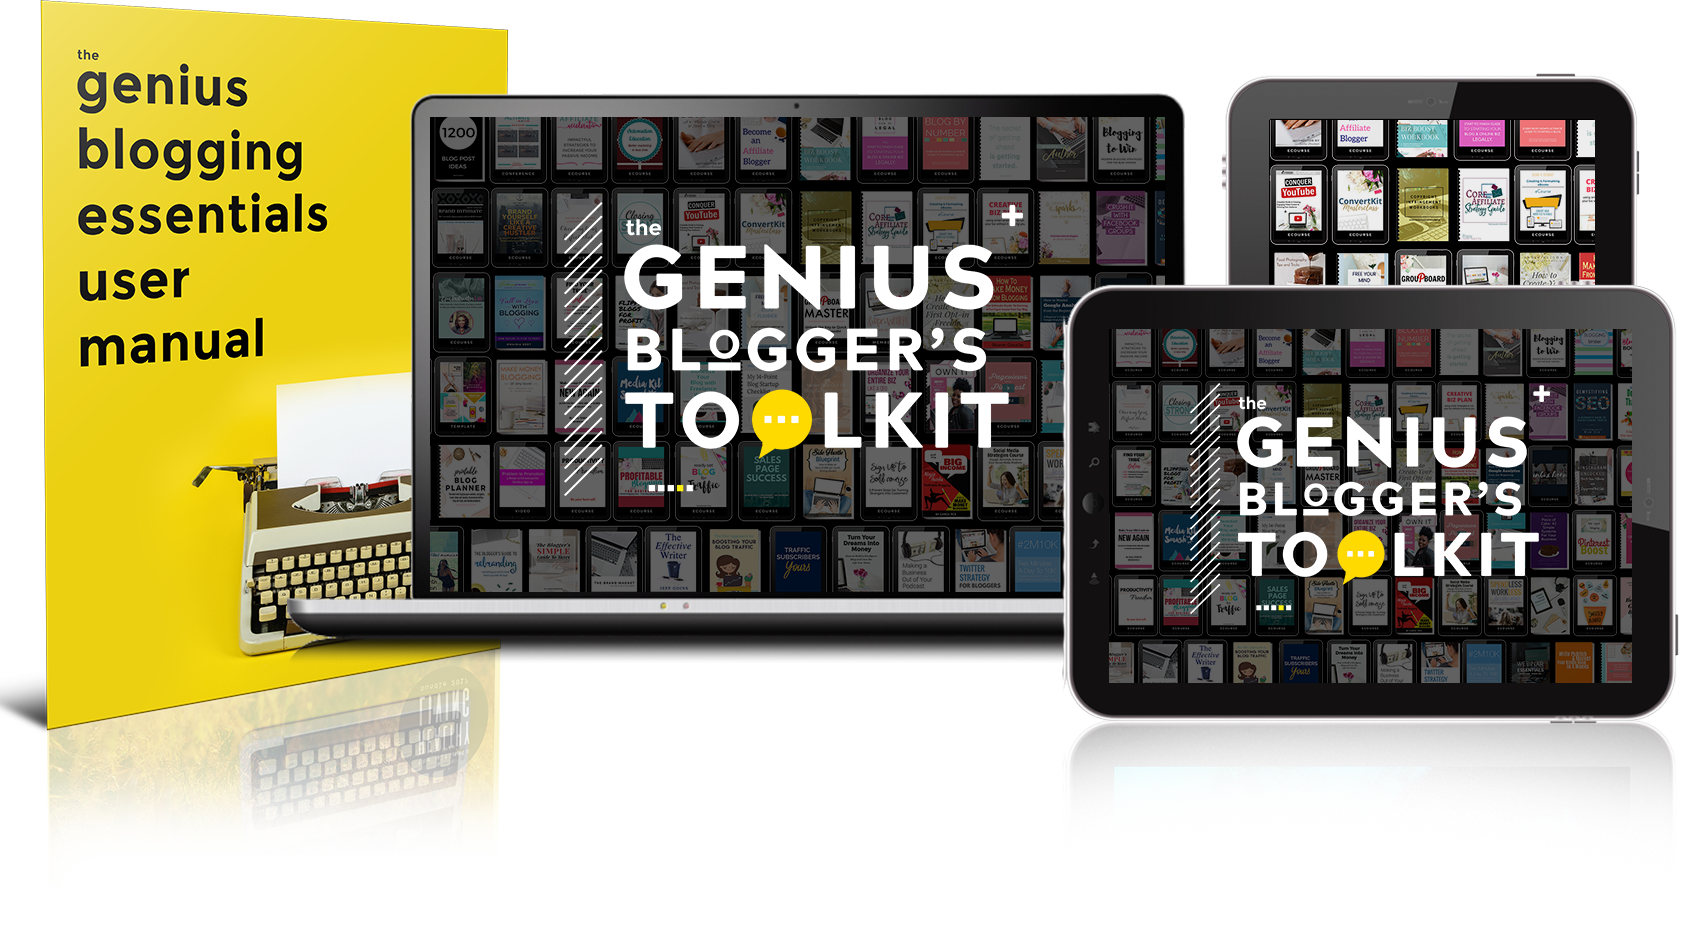 electronic reading devices with The Genius Bloggers Toolkit